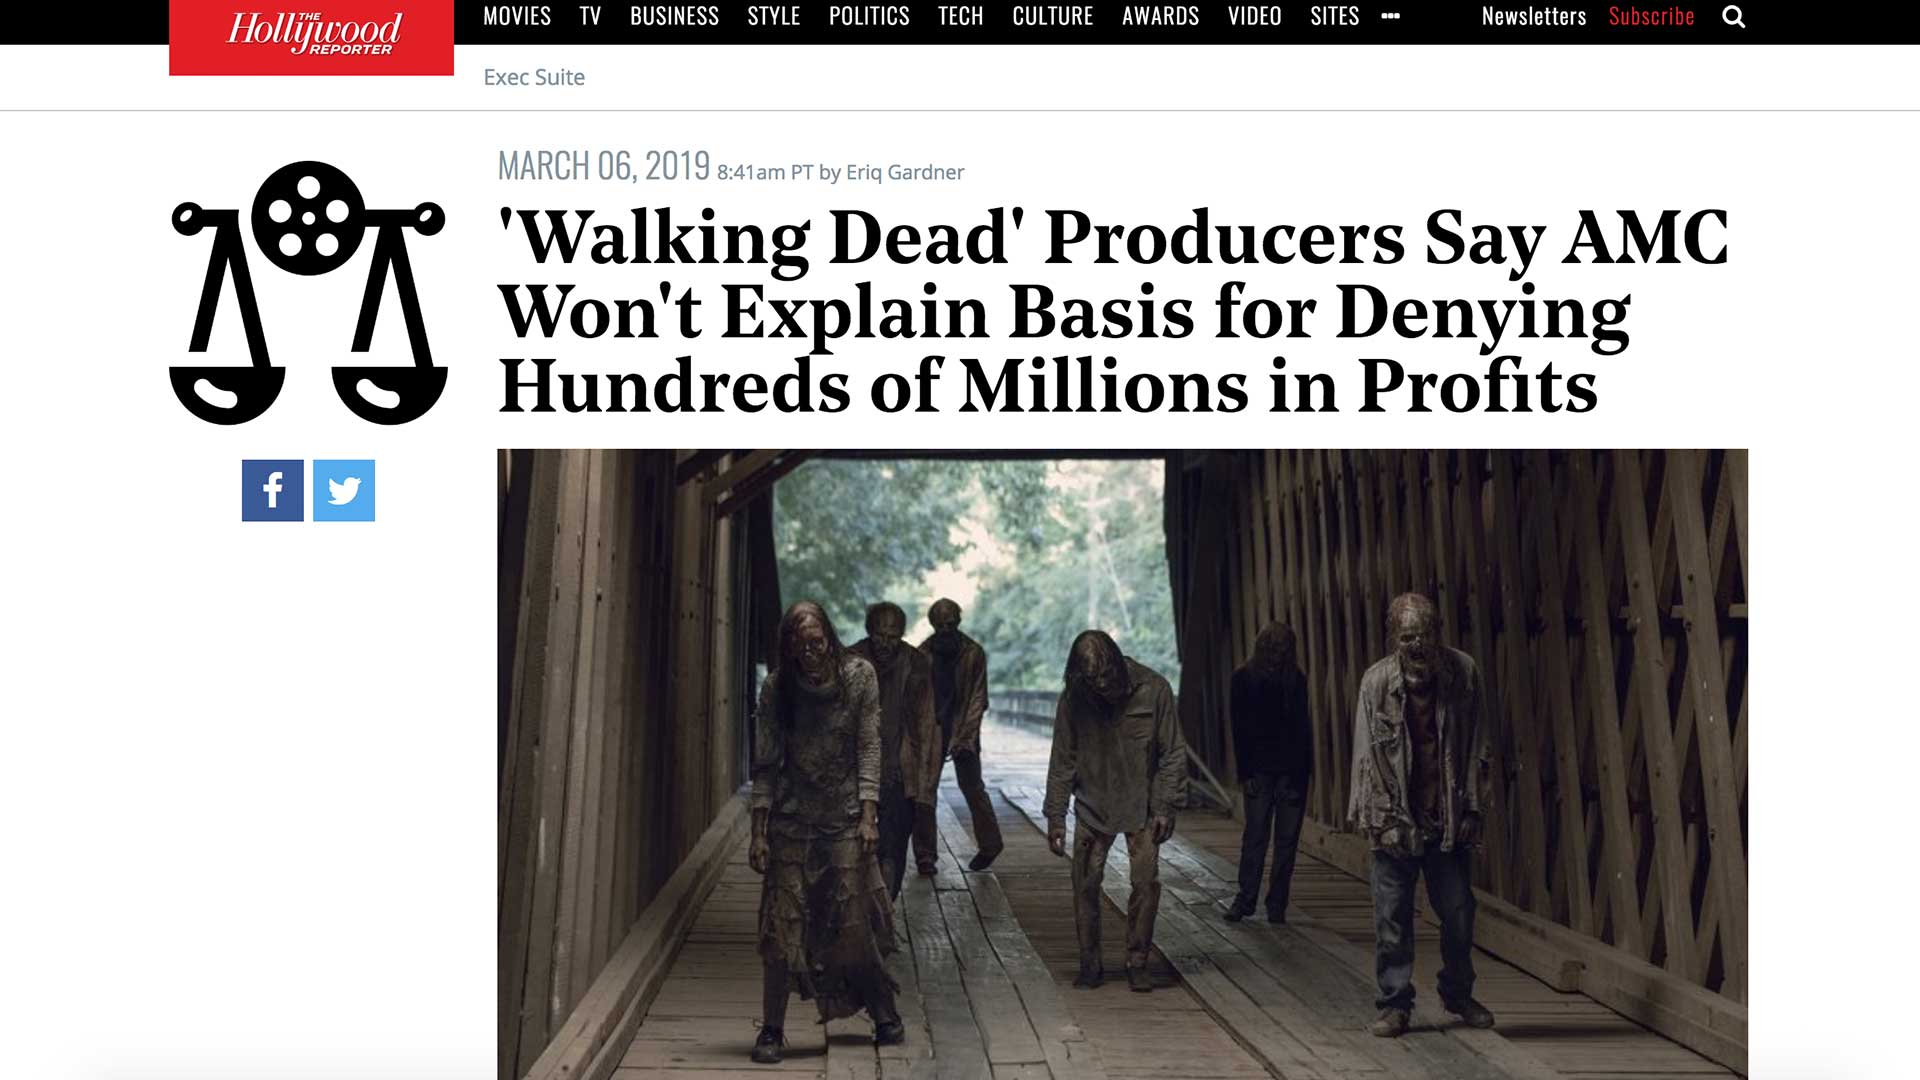 Fairness Rocks News 'Walking Dead' Producers Say AMC Won't Explain Basis for Denying Hundreds of Millions in Profits